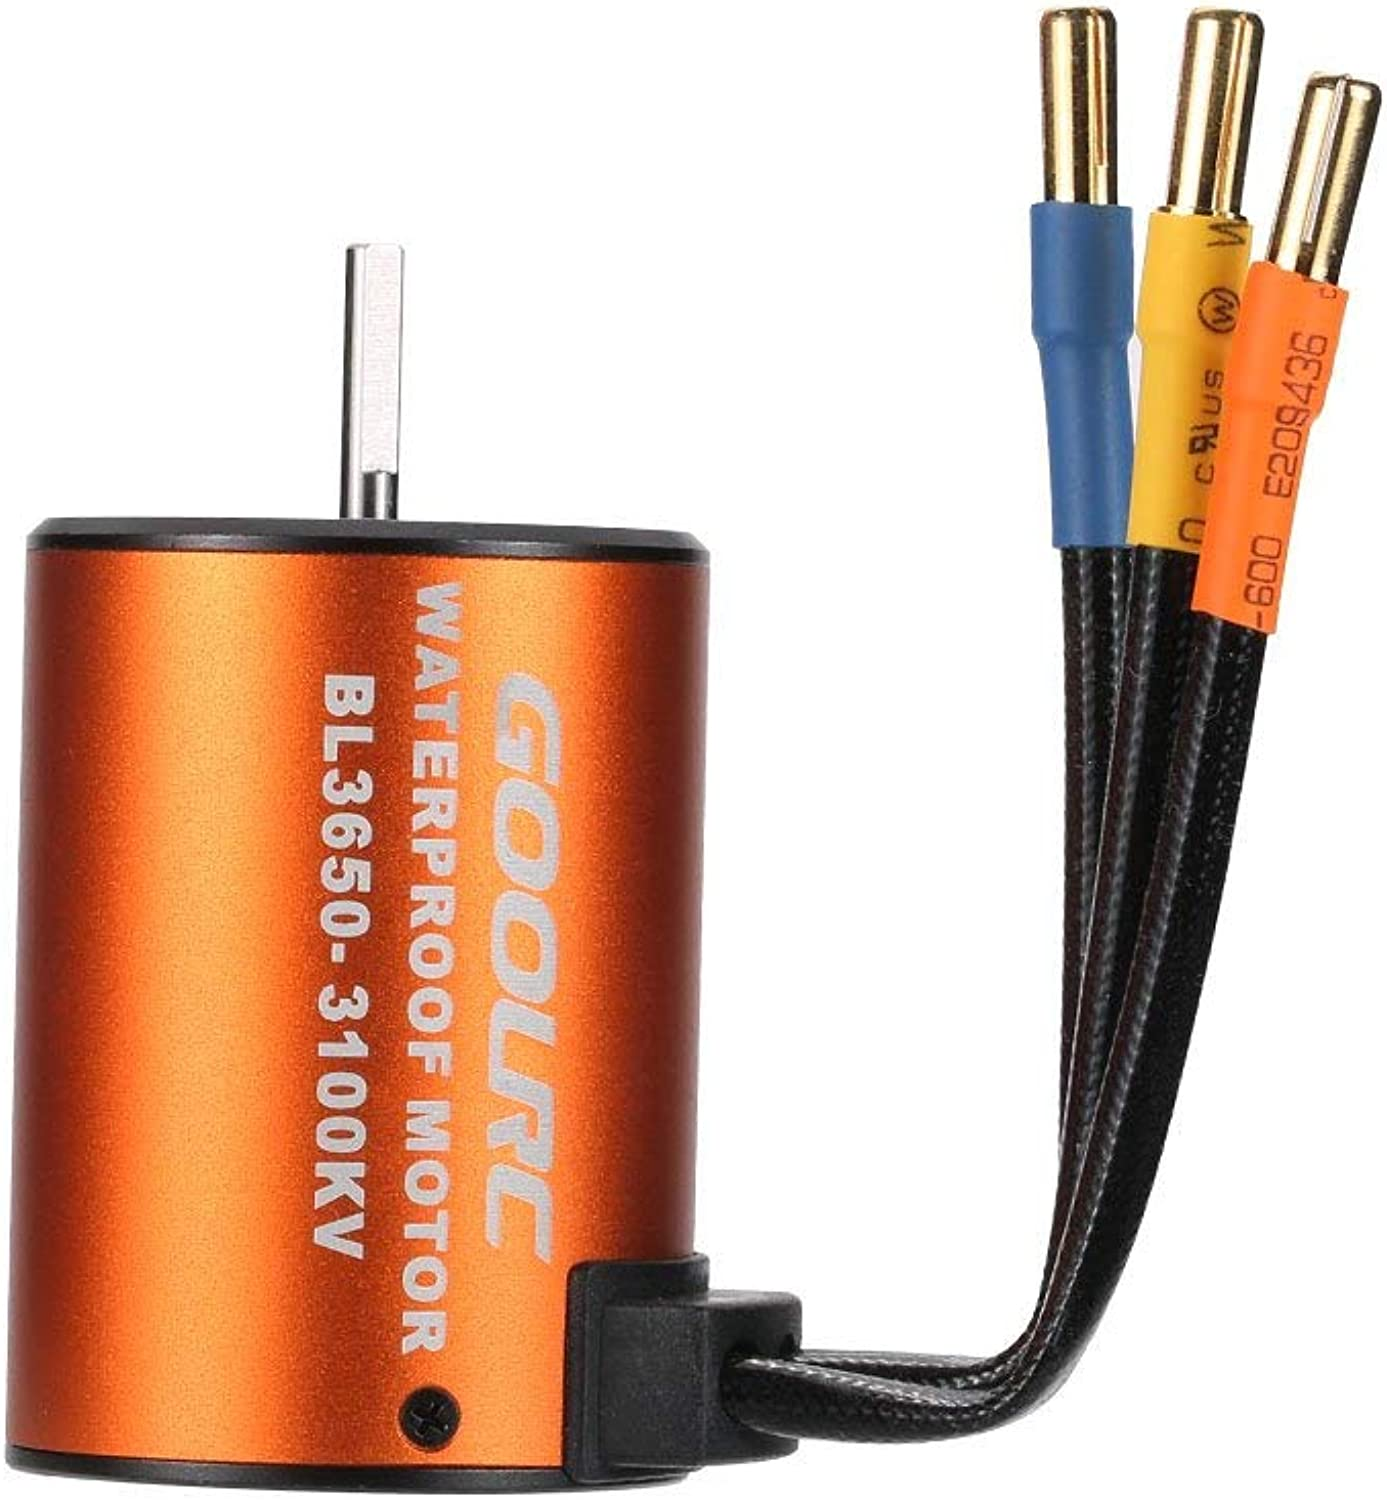 Hatime Upgrade Waterproof 3650 3100KV Brushless Motor with 45A ESC Combo Set for 1 10 RC Car Truck